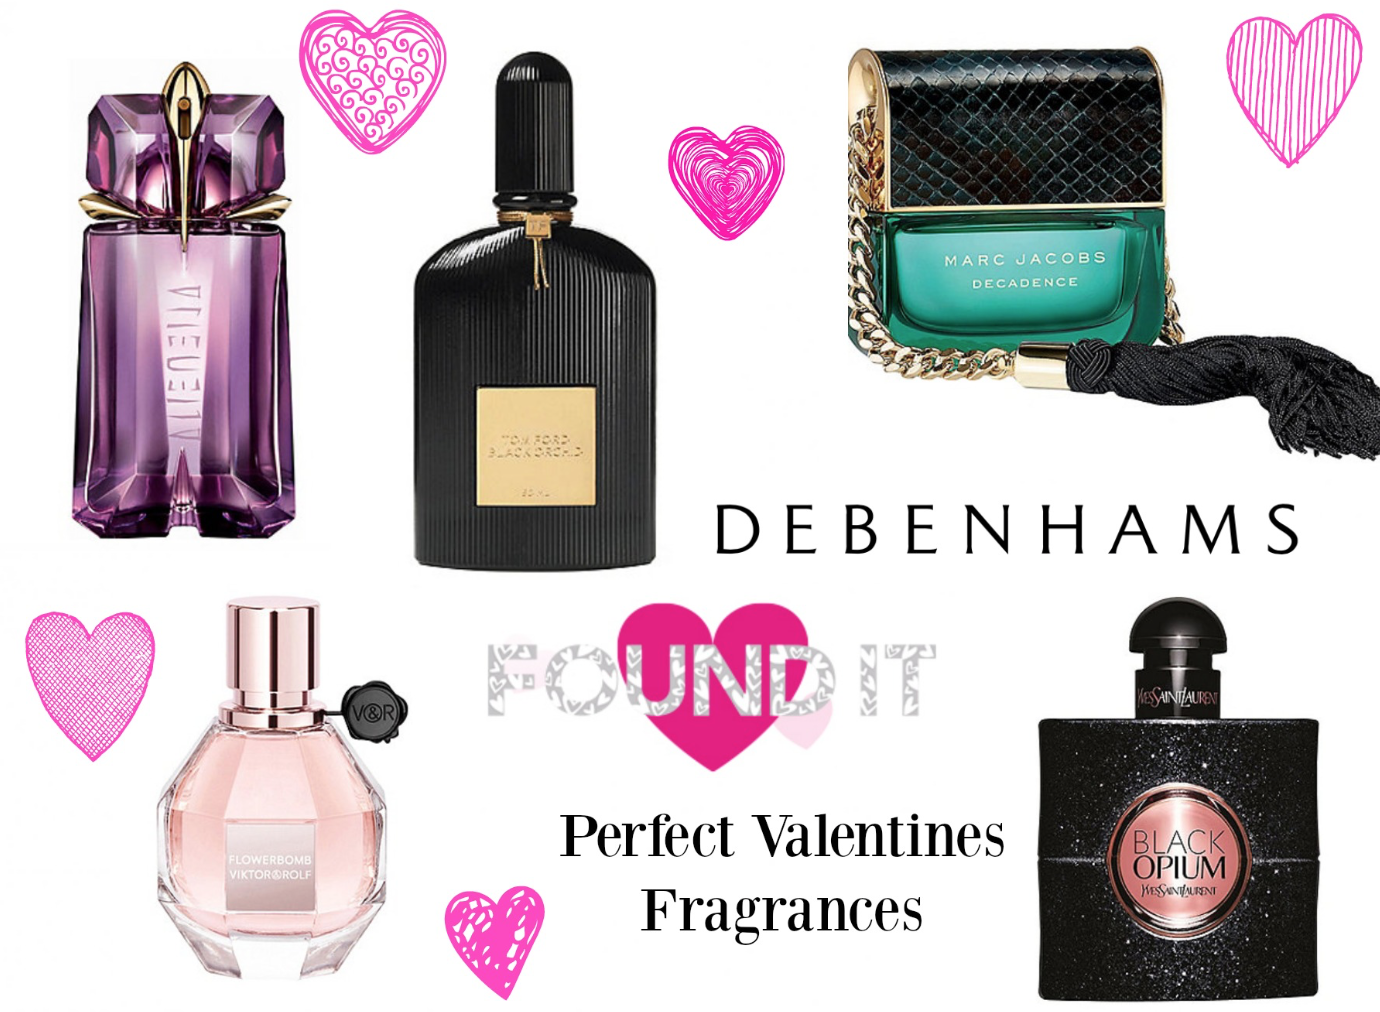 Find Your Perfect Valentine's Gift with Debenhams